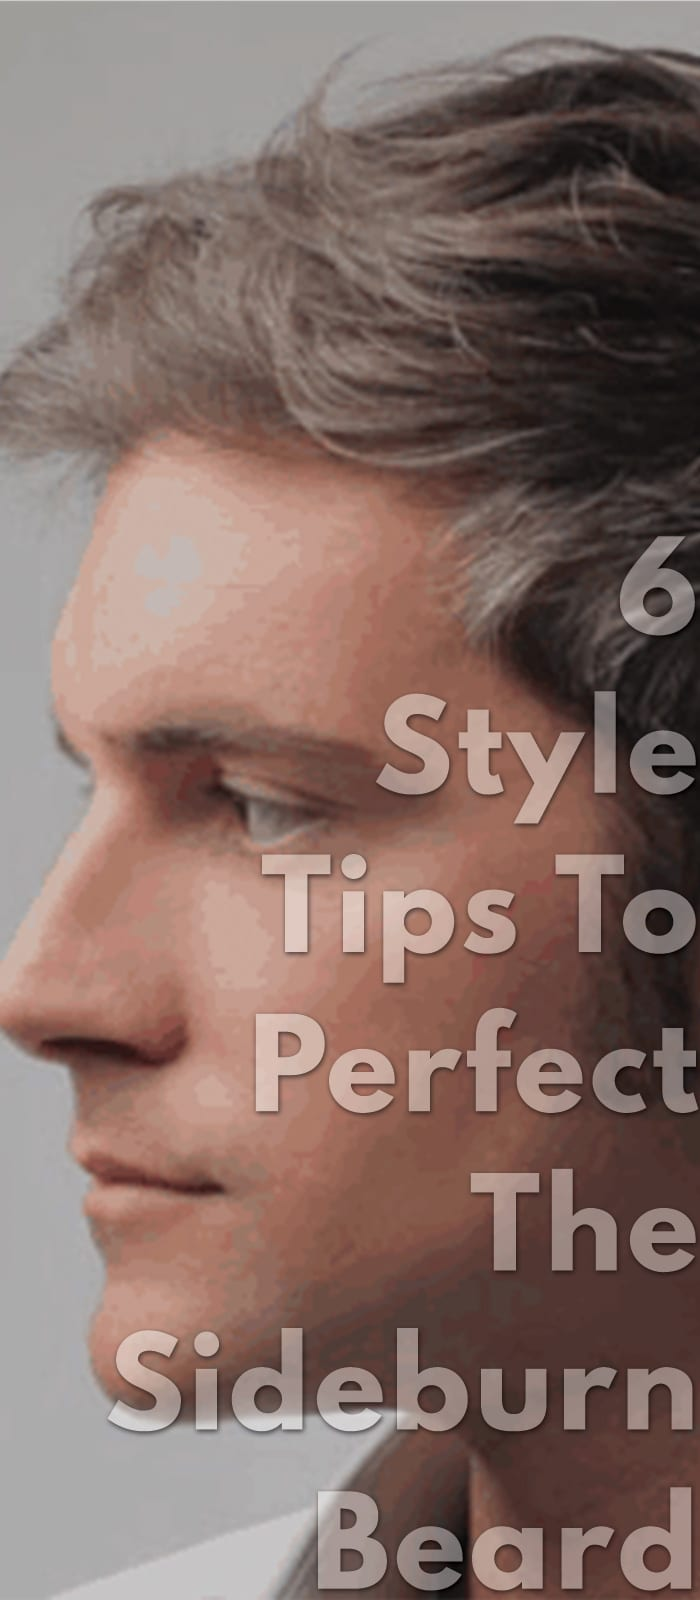 6-Style-Tips-To-Perfect-The-Sideburn-Beard